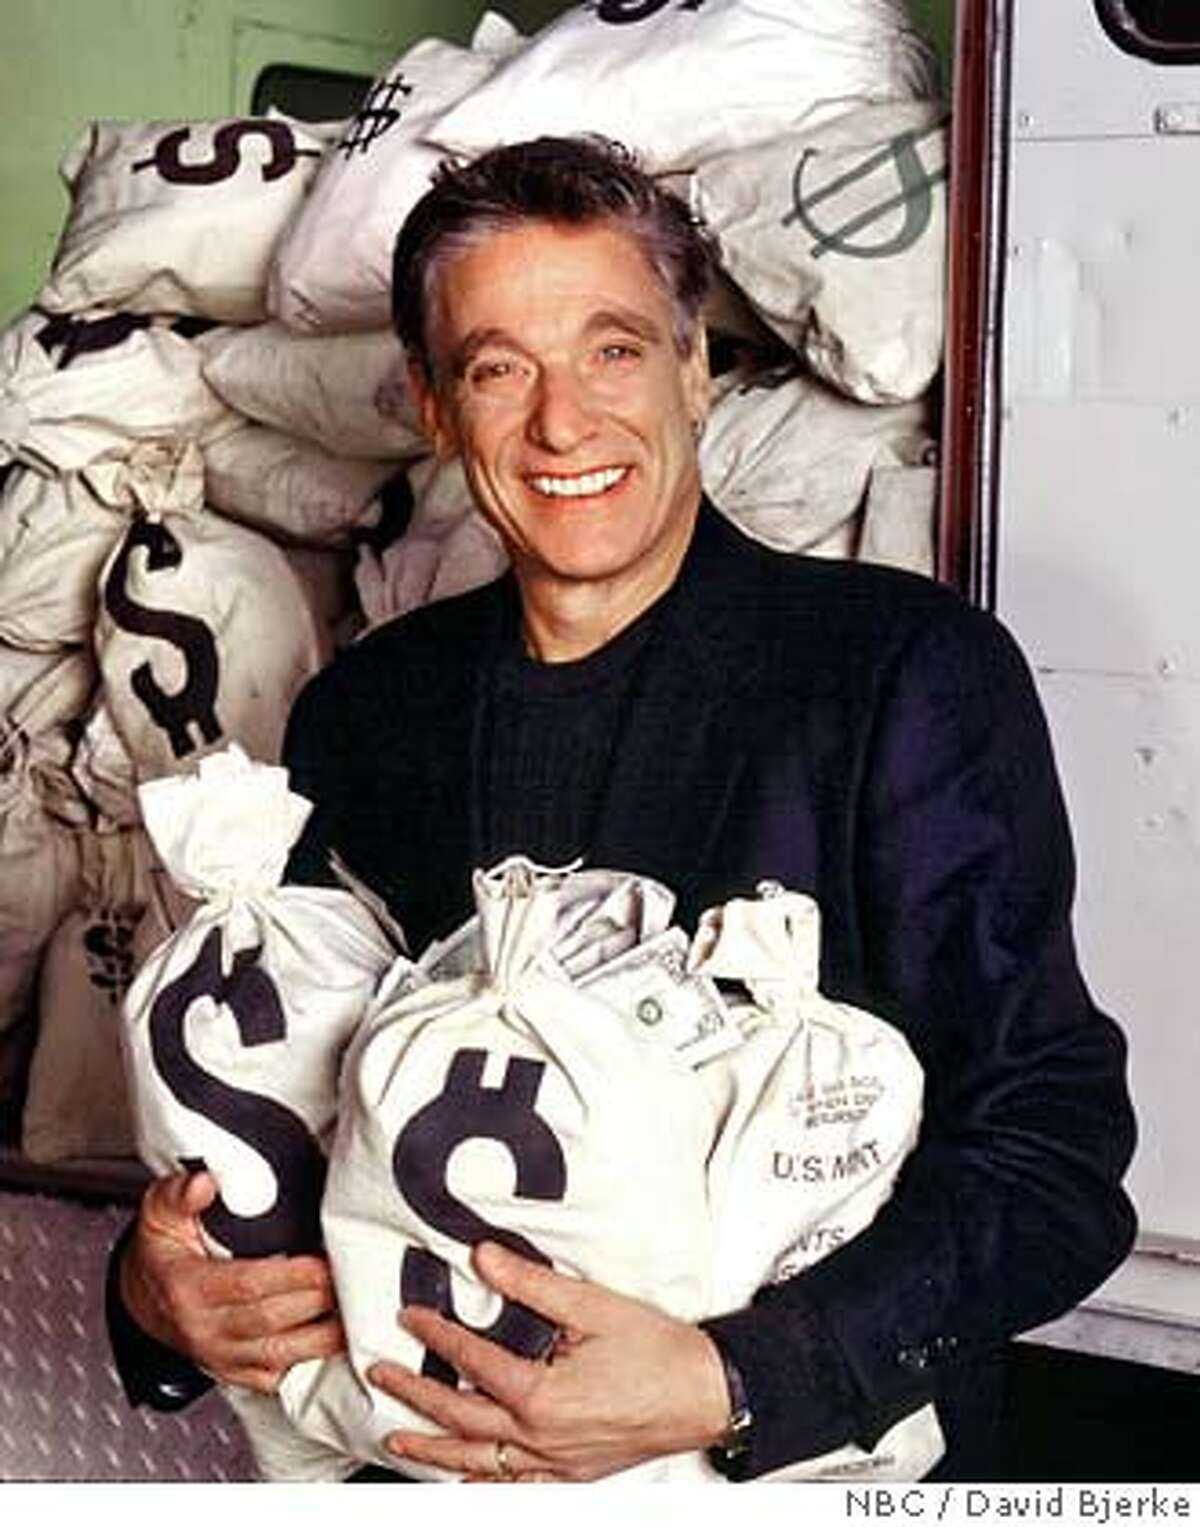 �CARMAN12/C/11JAN00/DD/HO-Twenty One -- NBC Series -- Pictured: Maury Povich, host -- NBC Photo: David Bjerke HANDOUT CAT